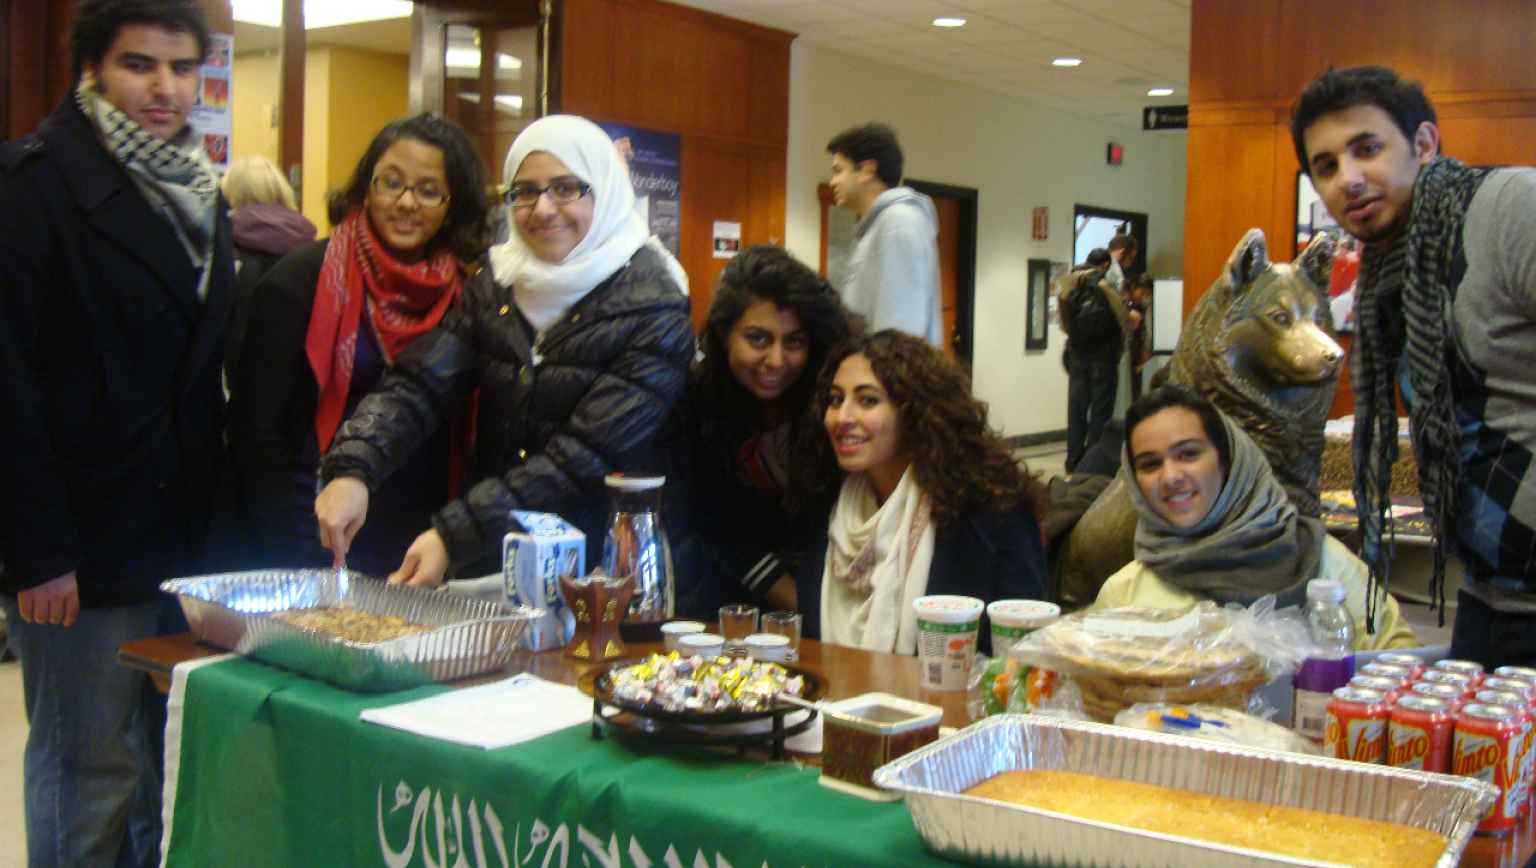 international students sharing homemade foods for cultural gathering